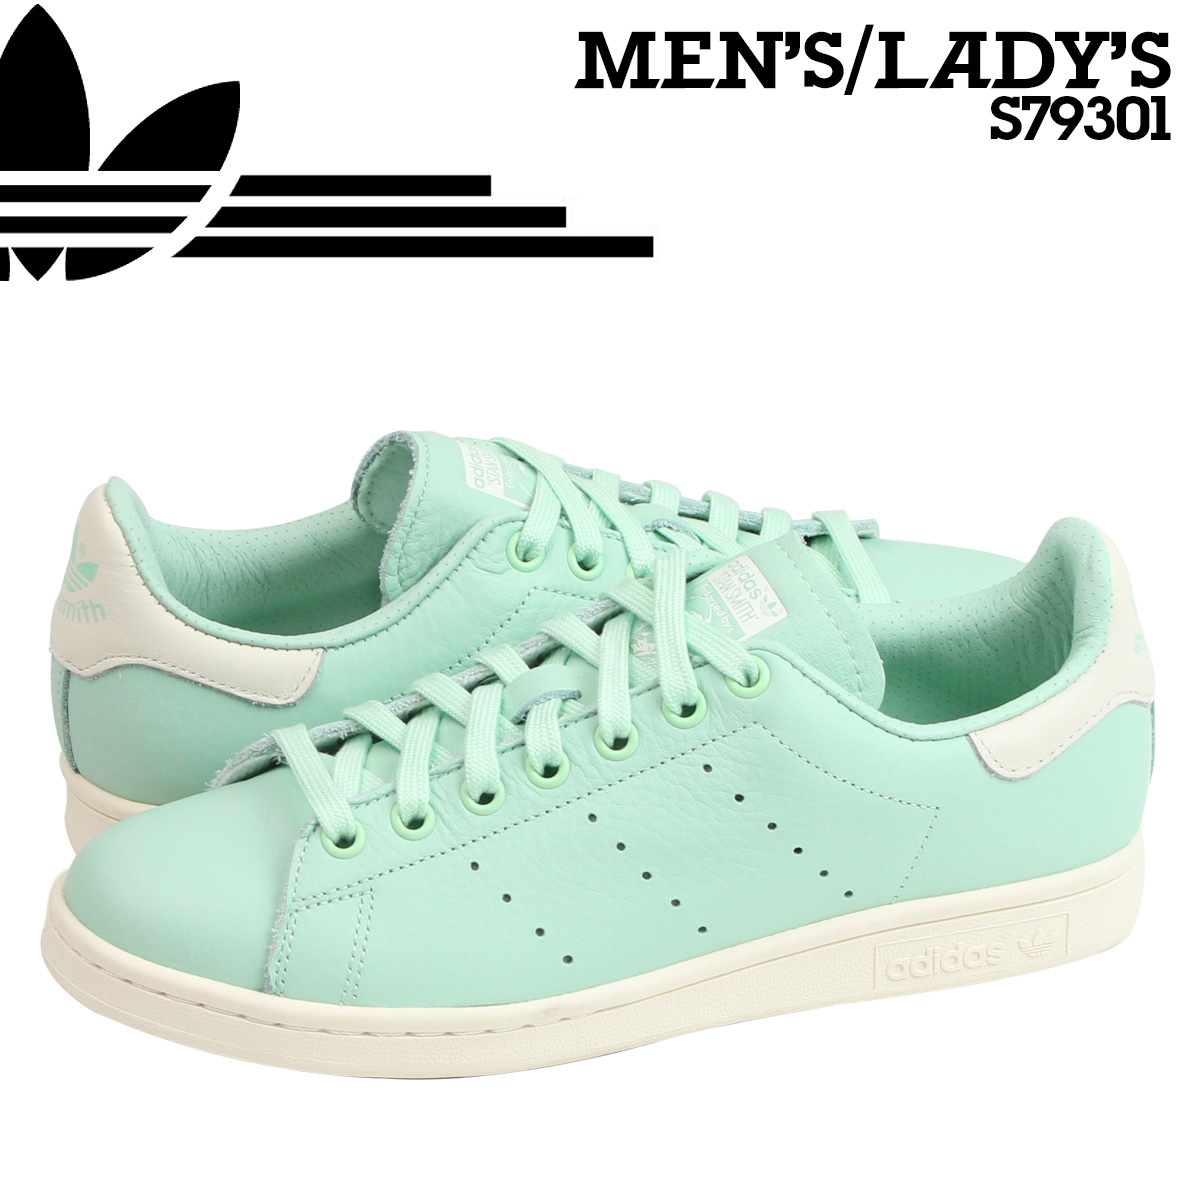 Sugar Online Shop | Rakuten Global Market: Adidas originals adidas  Originals Stan Smith sneakers STAN SMITH S79301 men's women's shoes Green